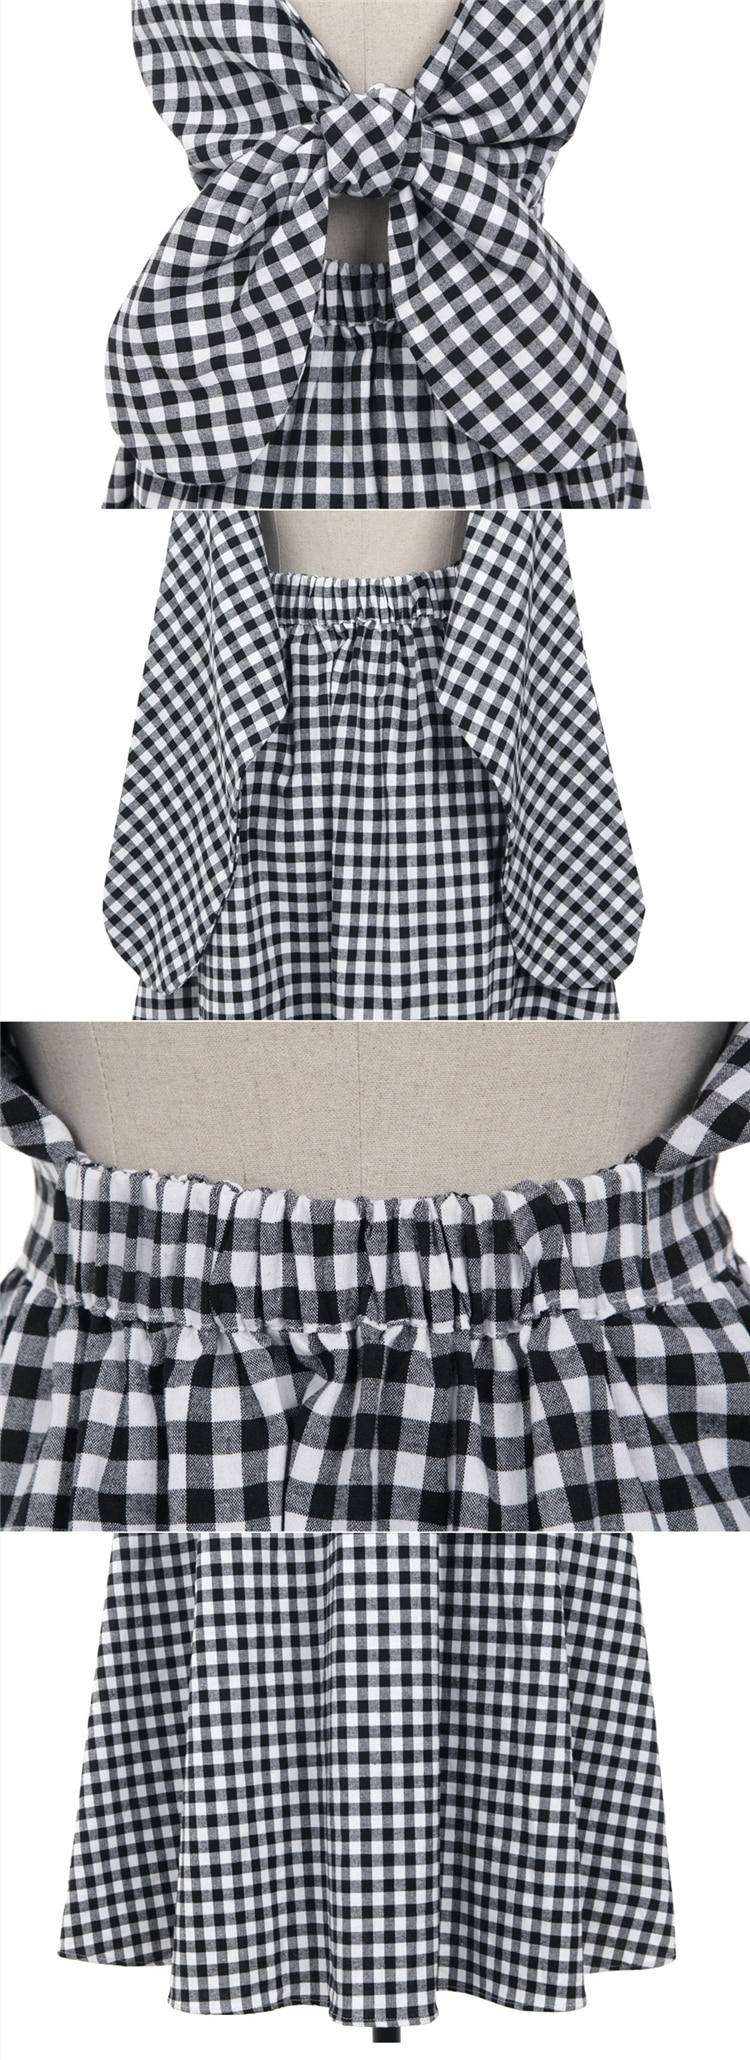 Colorfaith 2021 Women Summer Dresses Plaid Backless Sleeveless Pleated Checkered Lace Up Bow Cotton and Linen Long Dress DR2699